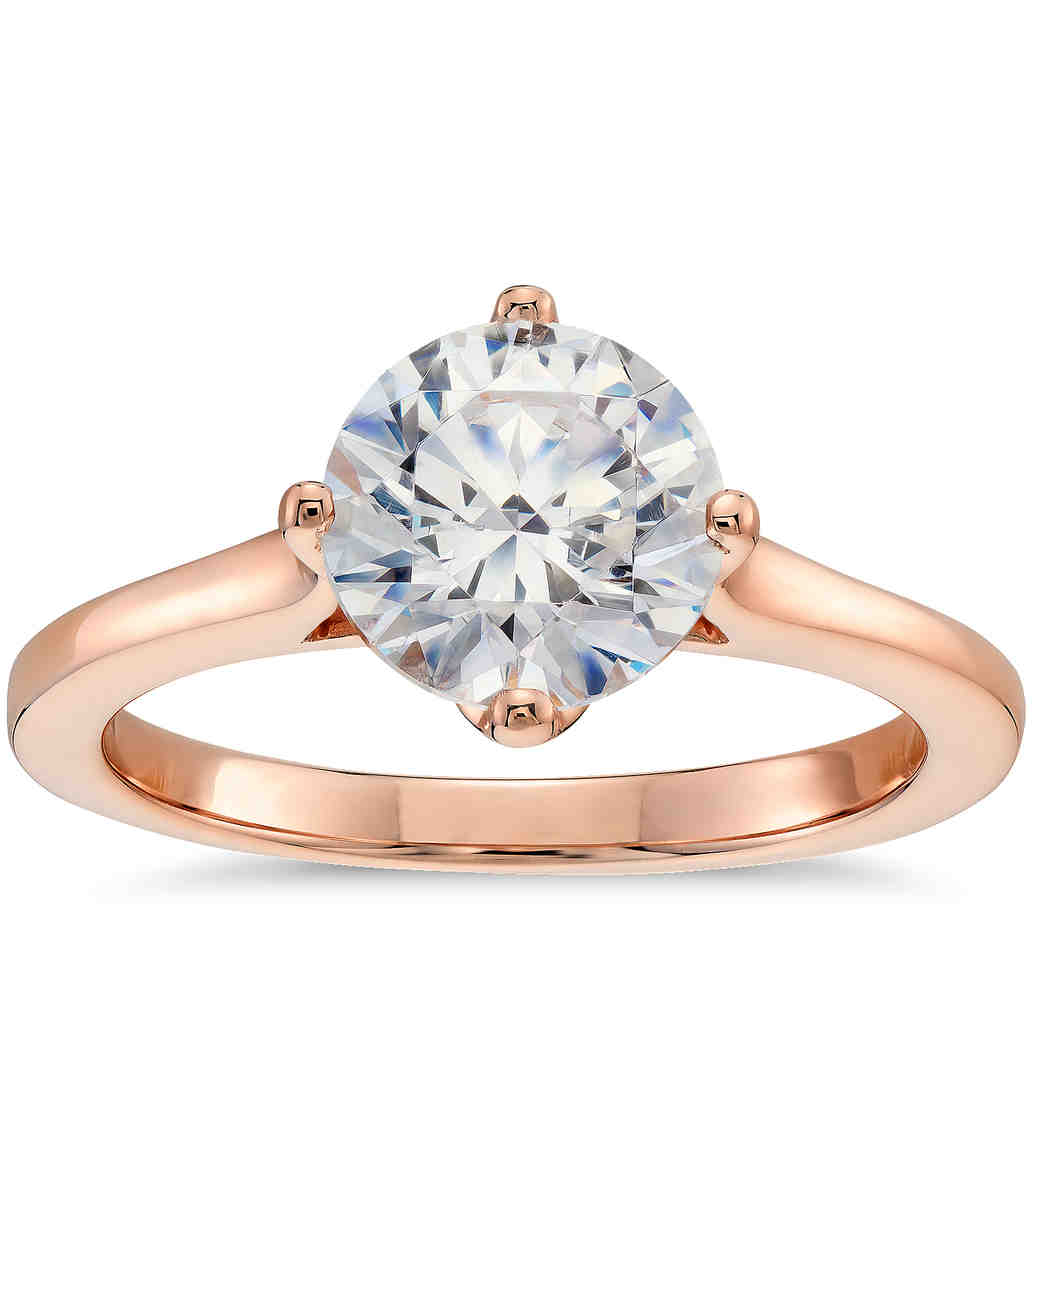 41 Rose Gold Engagement Rings We Love | Martha Stewart Weddings